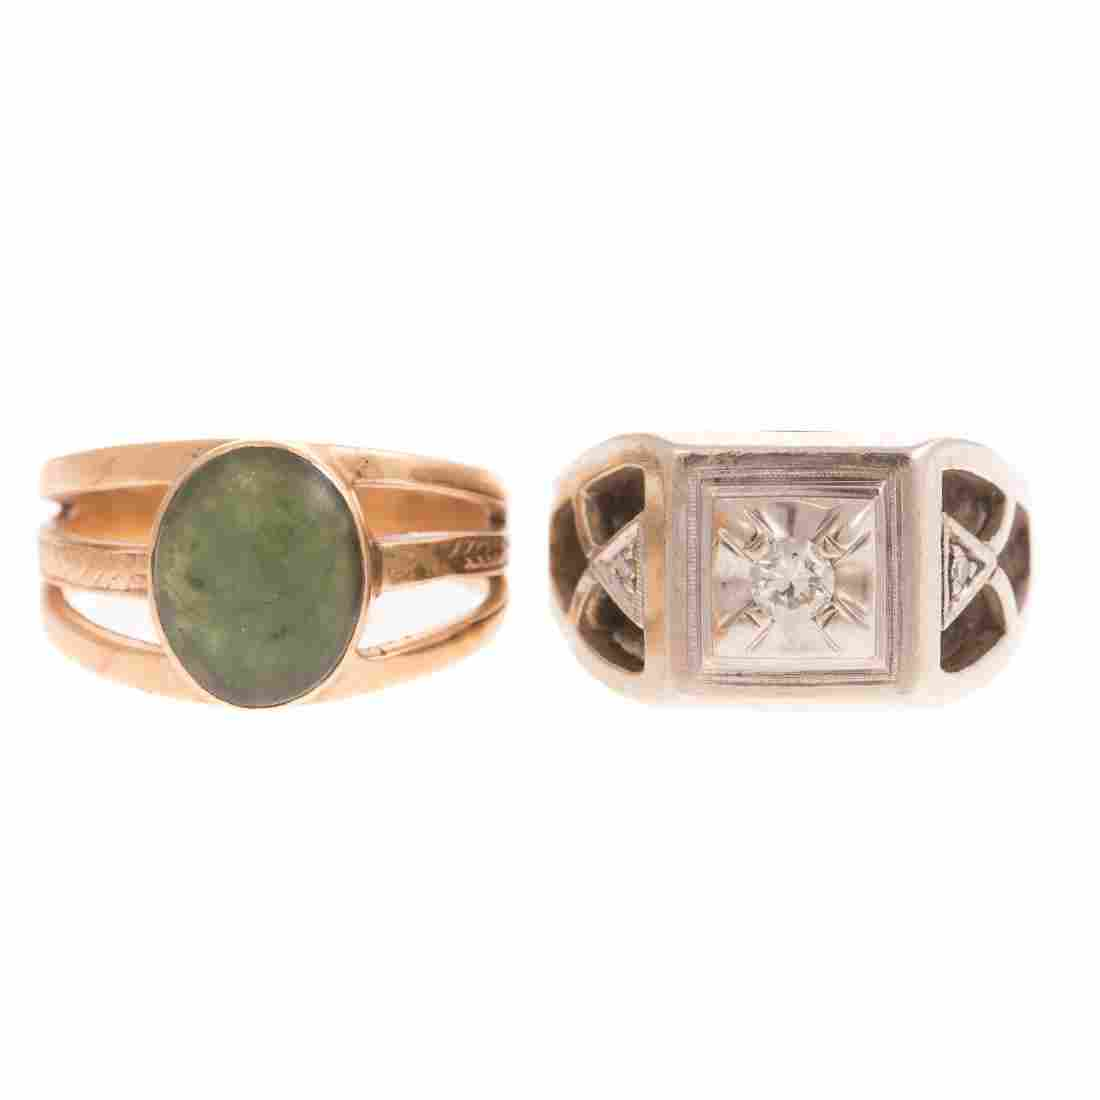 Two Gent's Rings with Jade & a Diamond in 14K